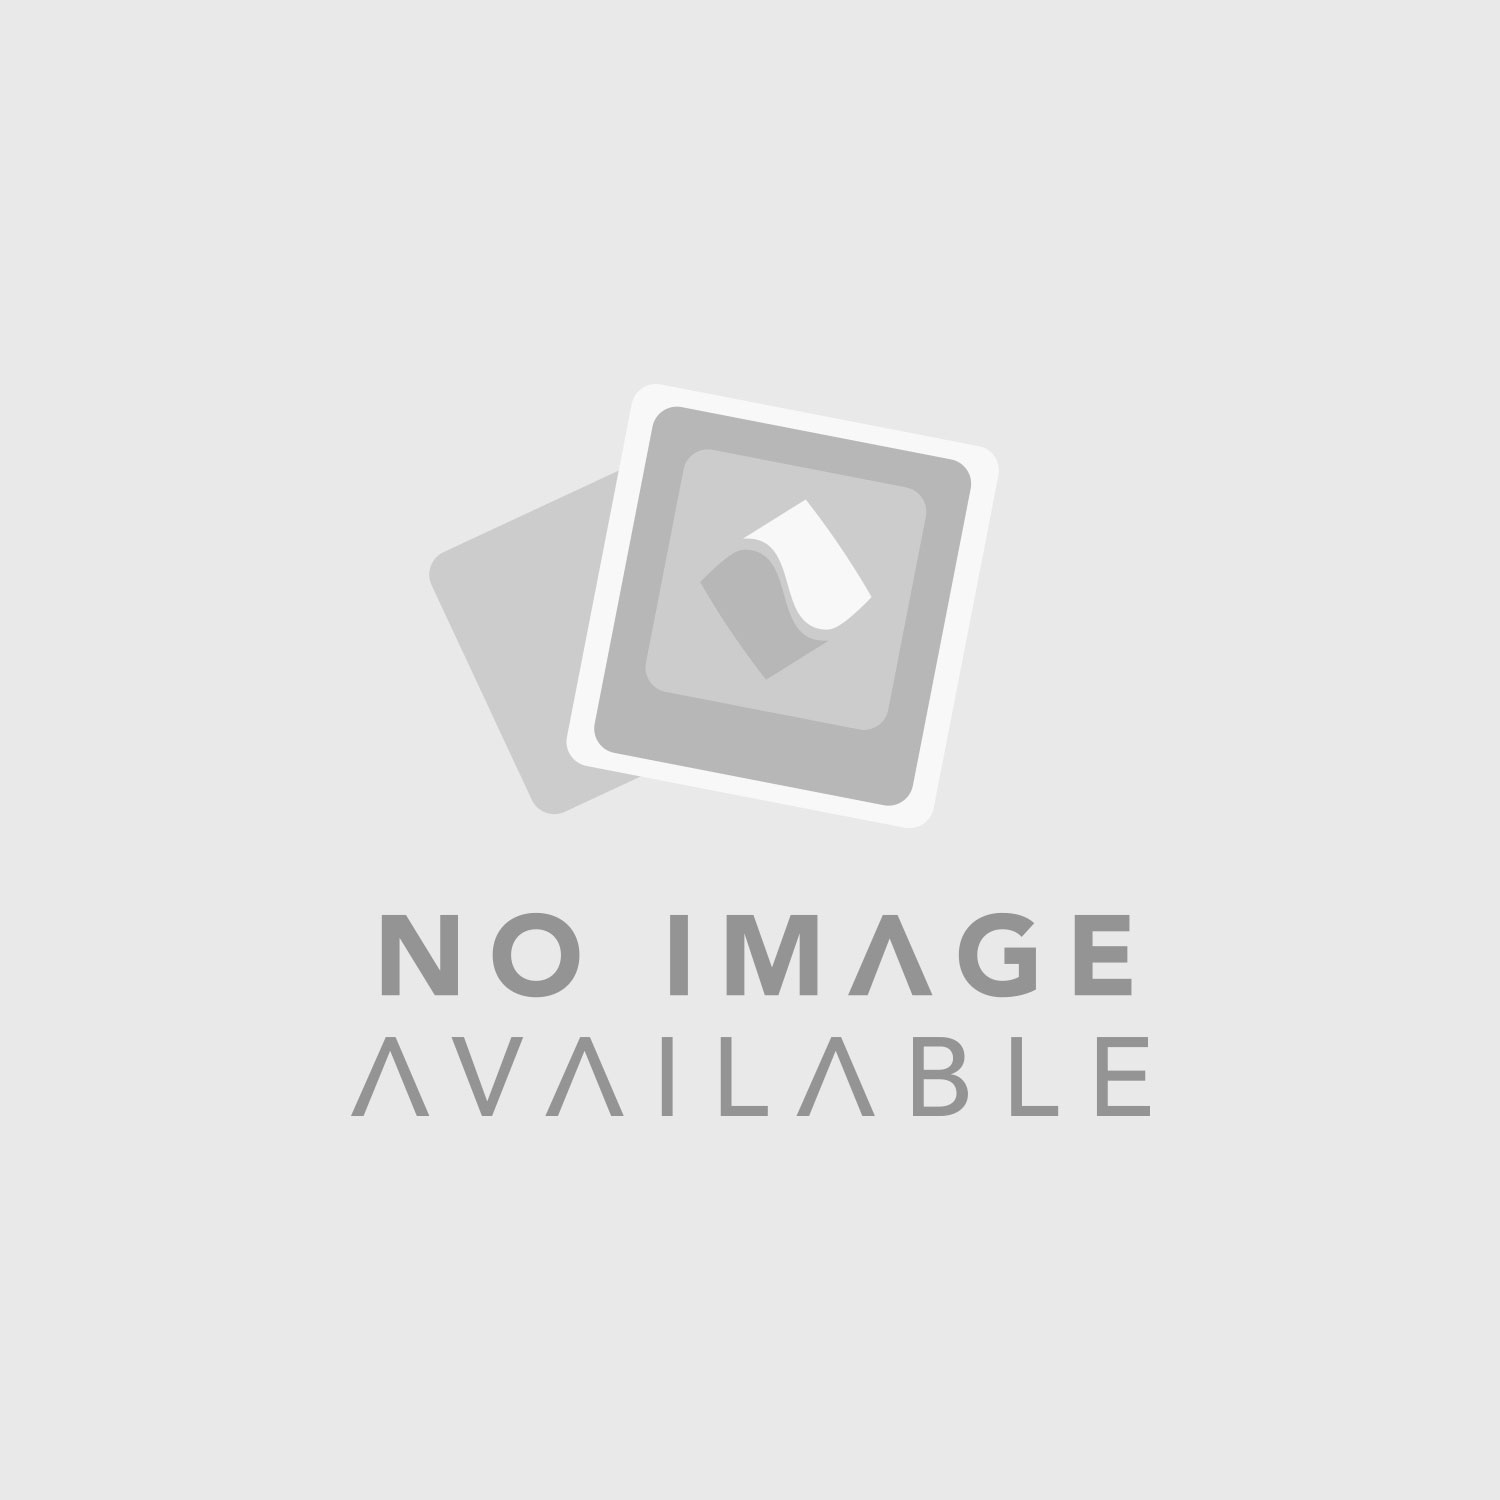 Neutrik 103F Single Gang Wallplate with Female XLR